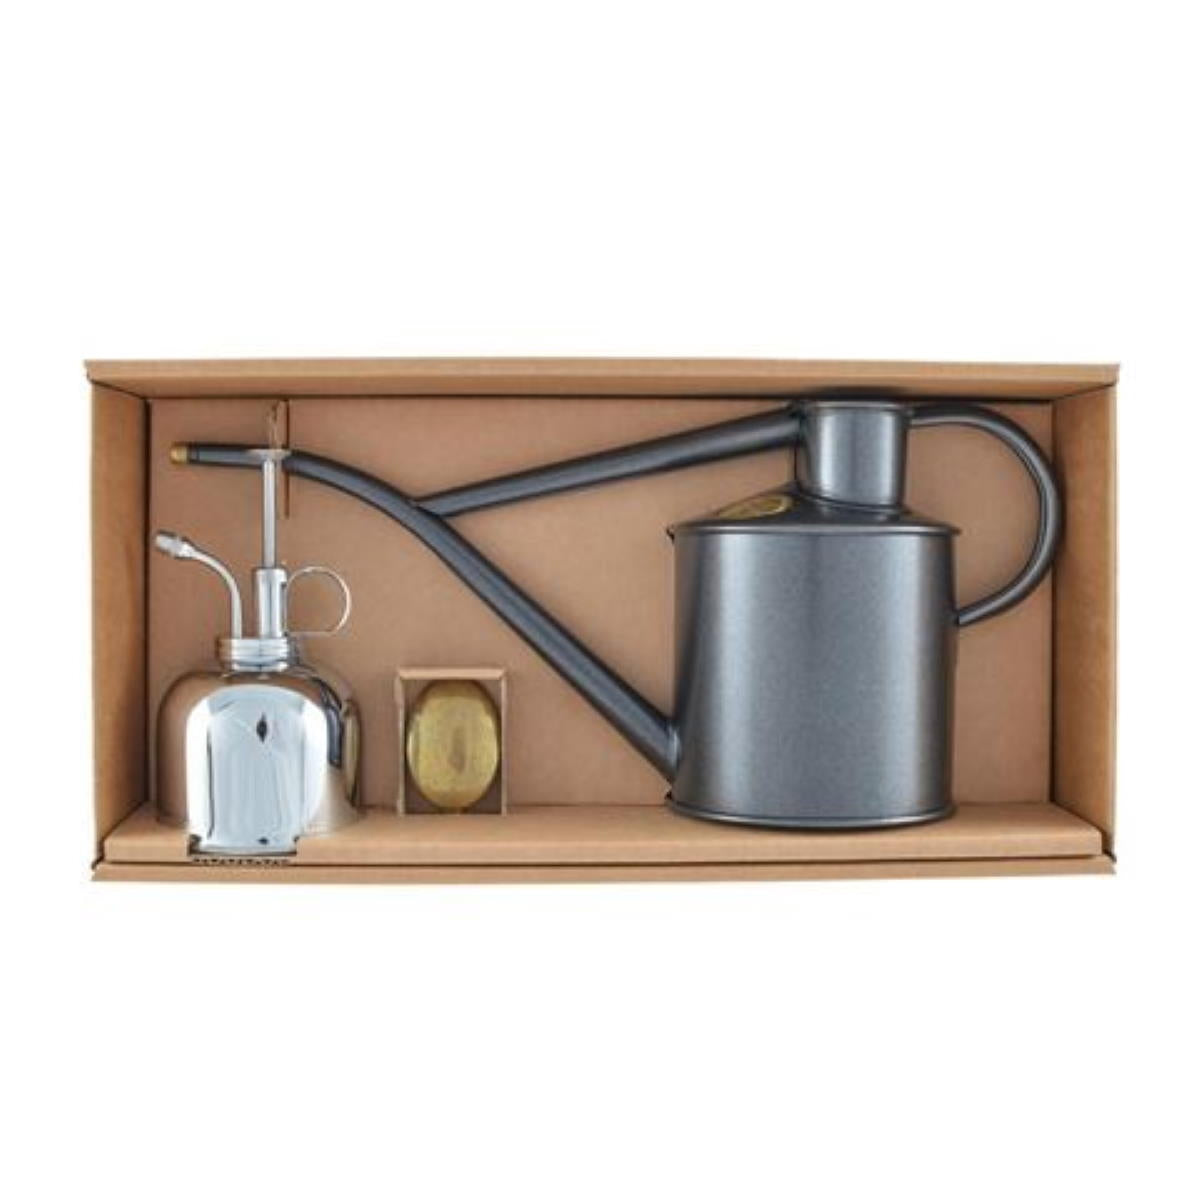 Haws Classic Watering Set - Graphite & Nickel